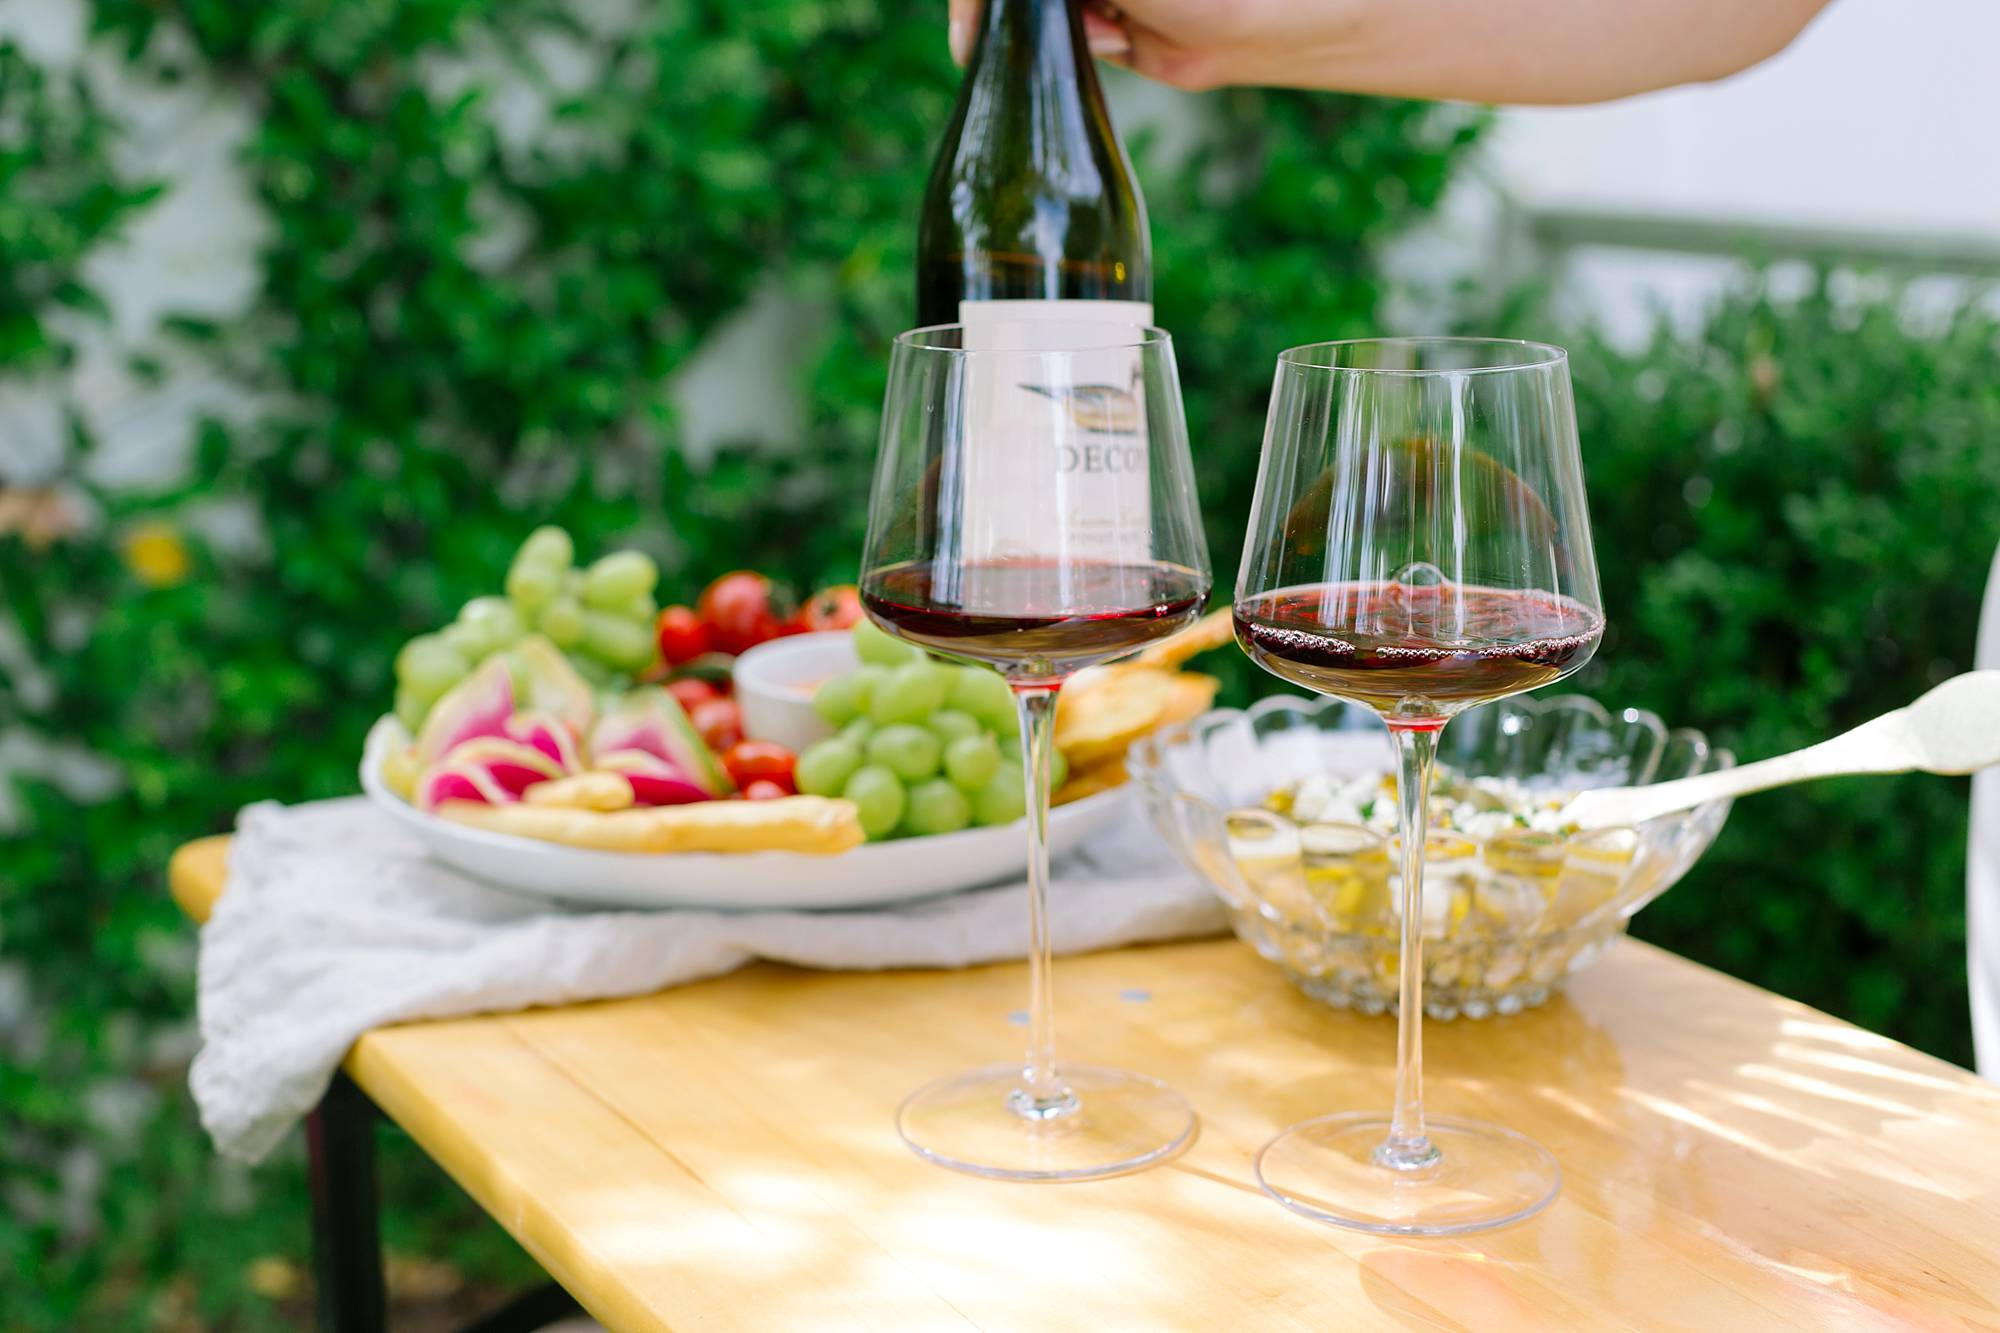 farmers market inspirational get together with decoy wine in the backyard - lifestyle blogger Diana Elizabeth in Phoenix Arizona